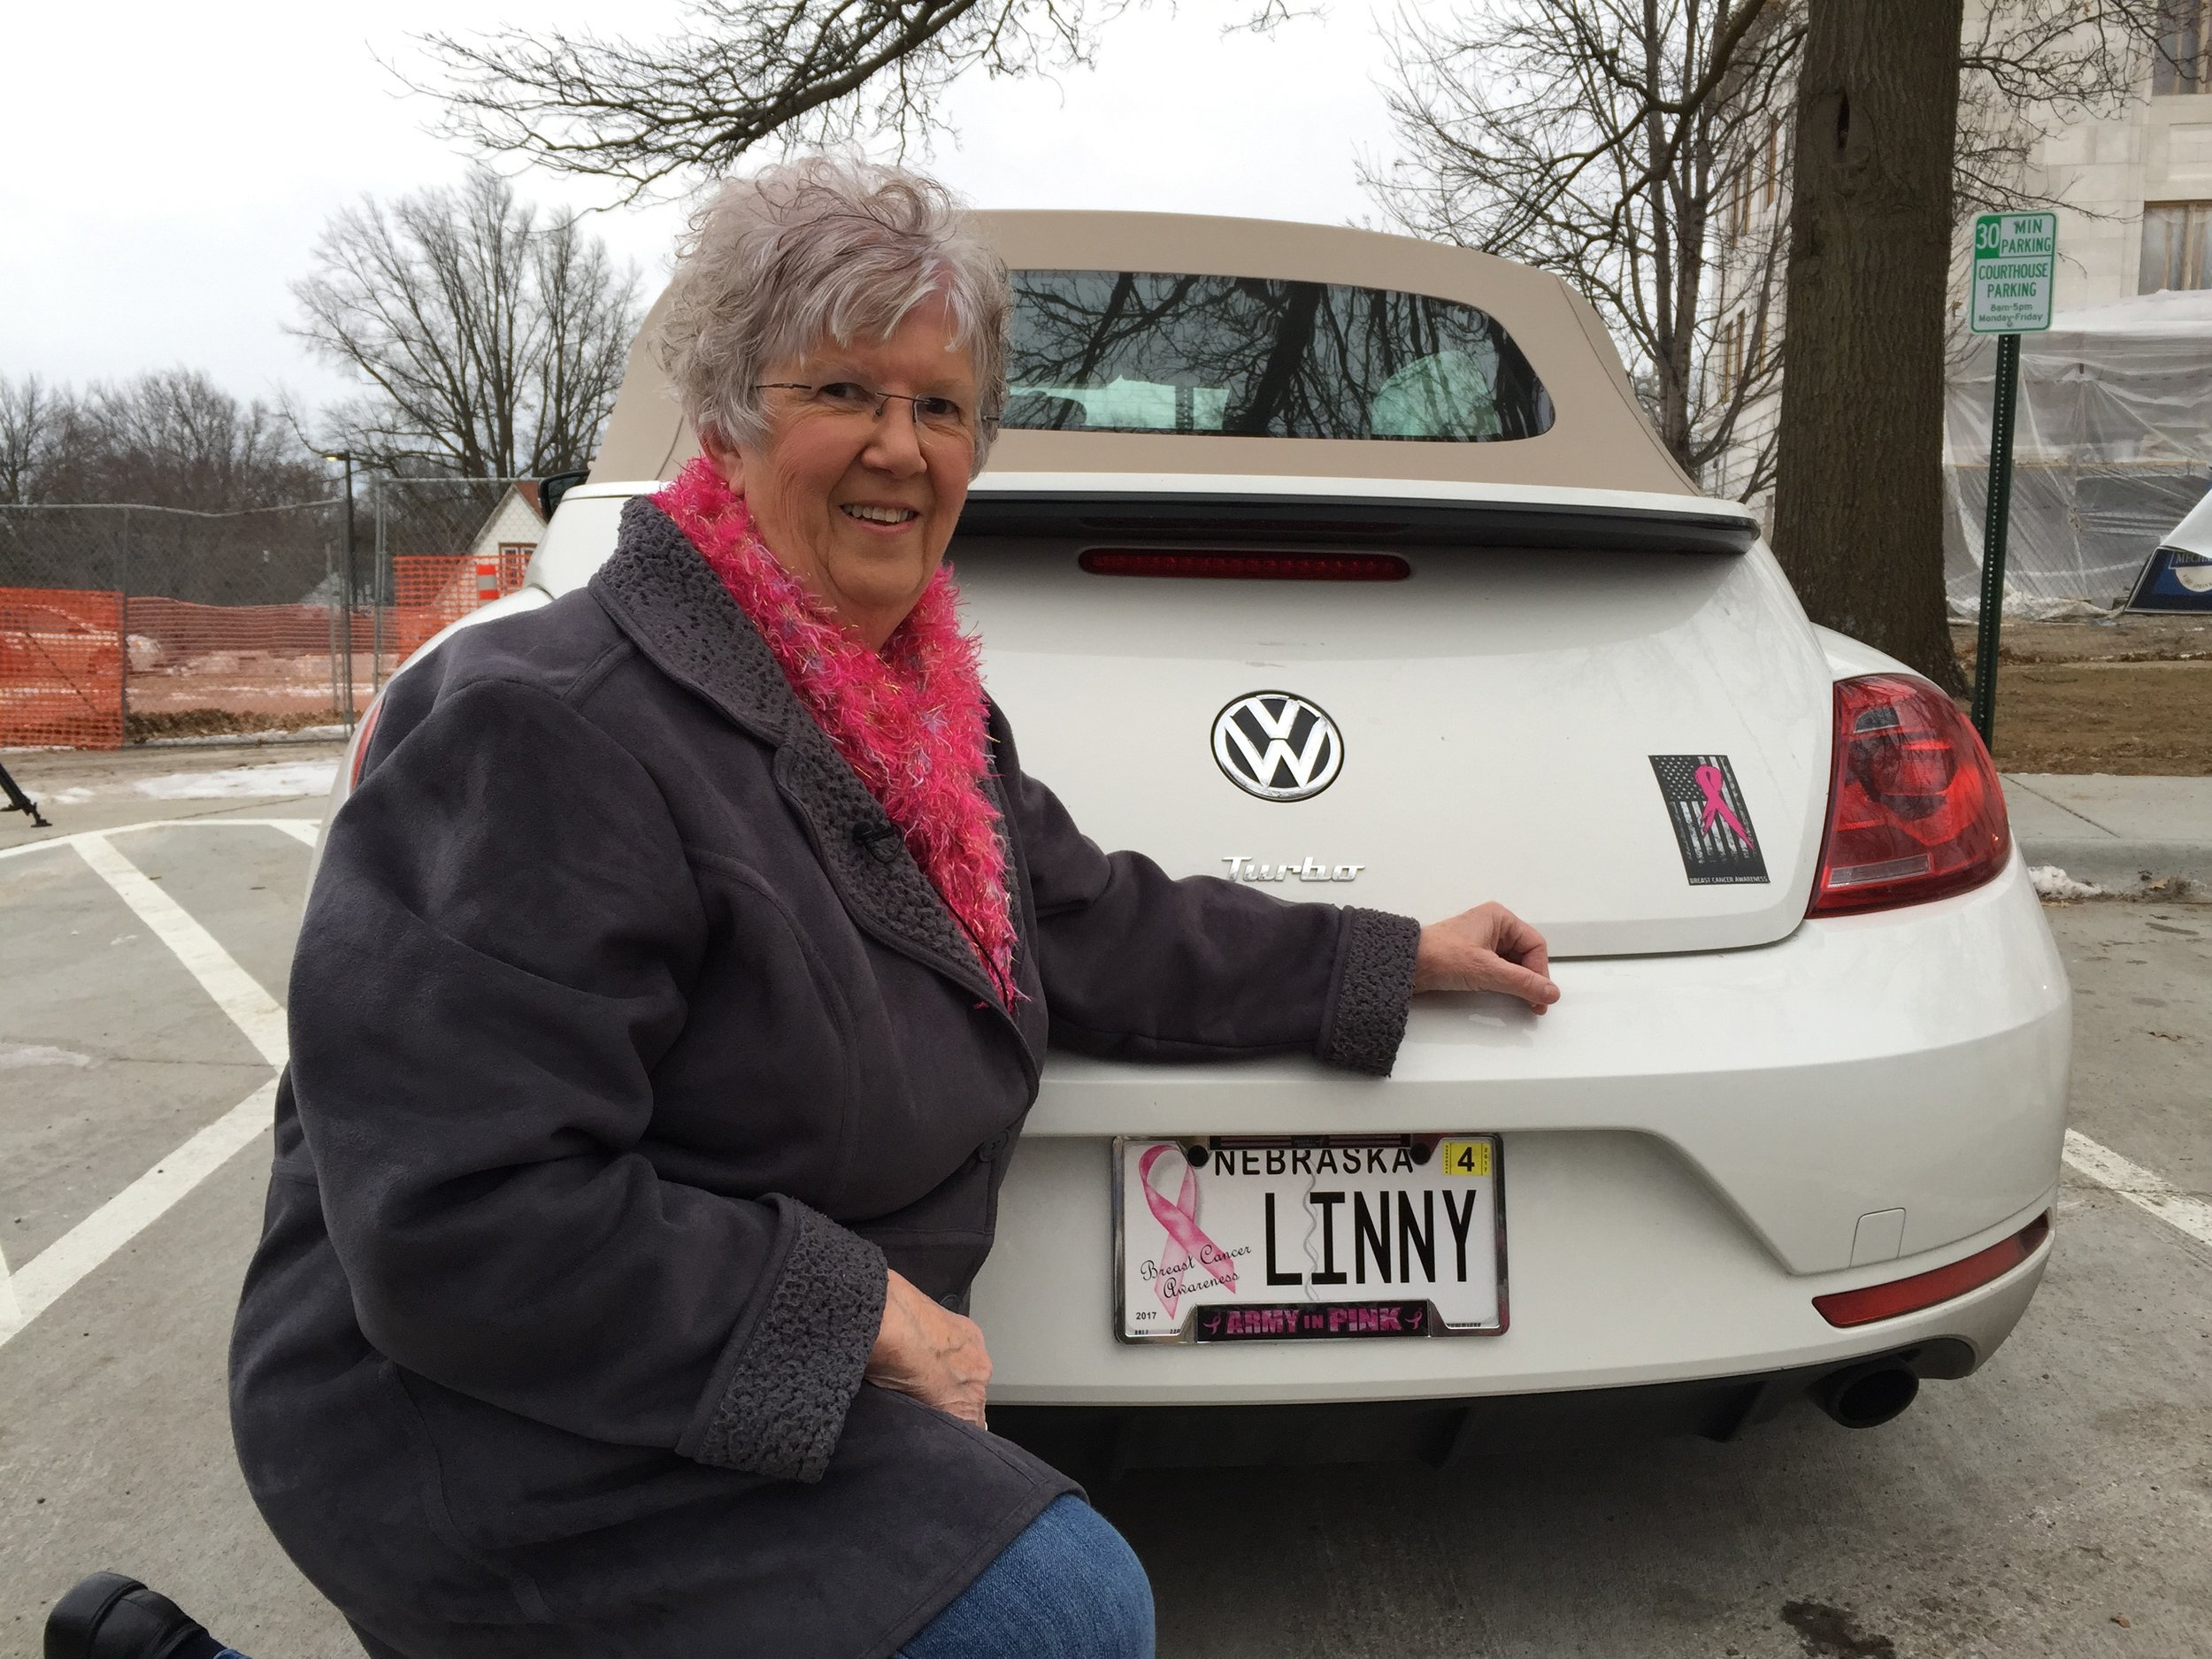 Linda Gill with new license plate.jpg